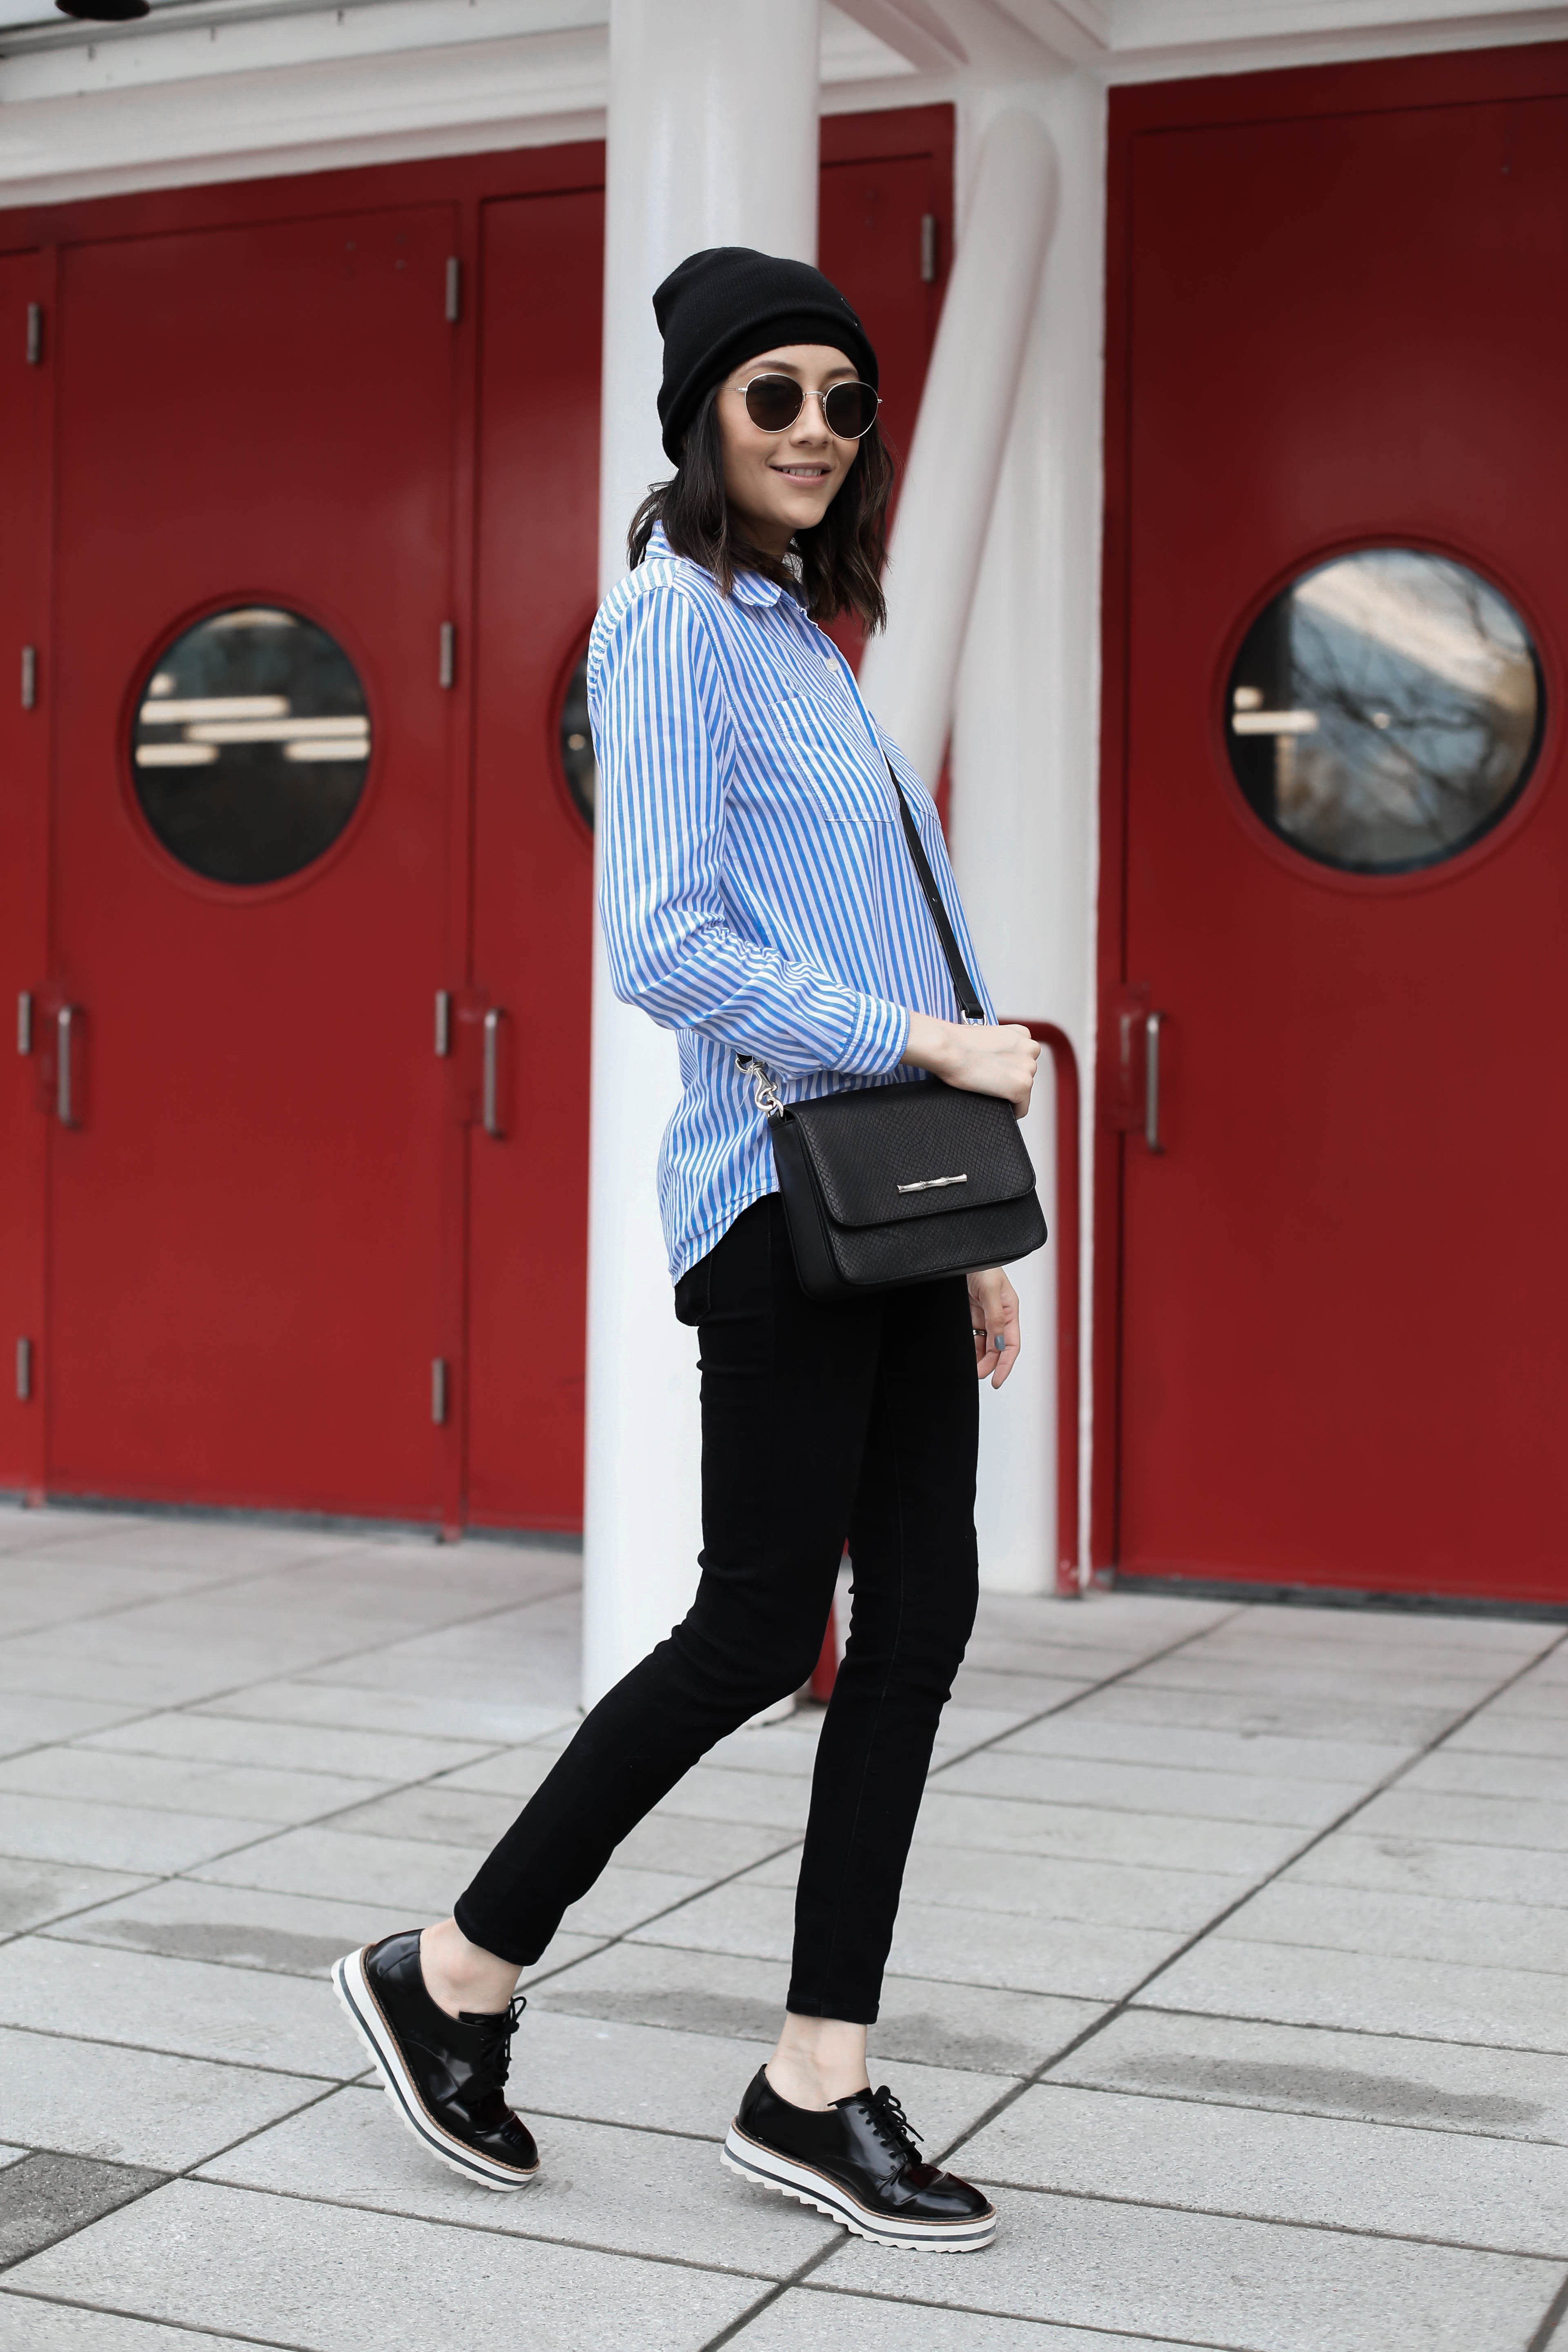 Lilly Beltran of Daily Craving in a fall outfit wearing black skinny jeans and striped button up shirt